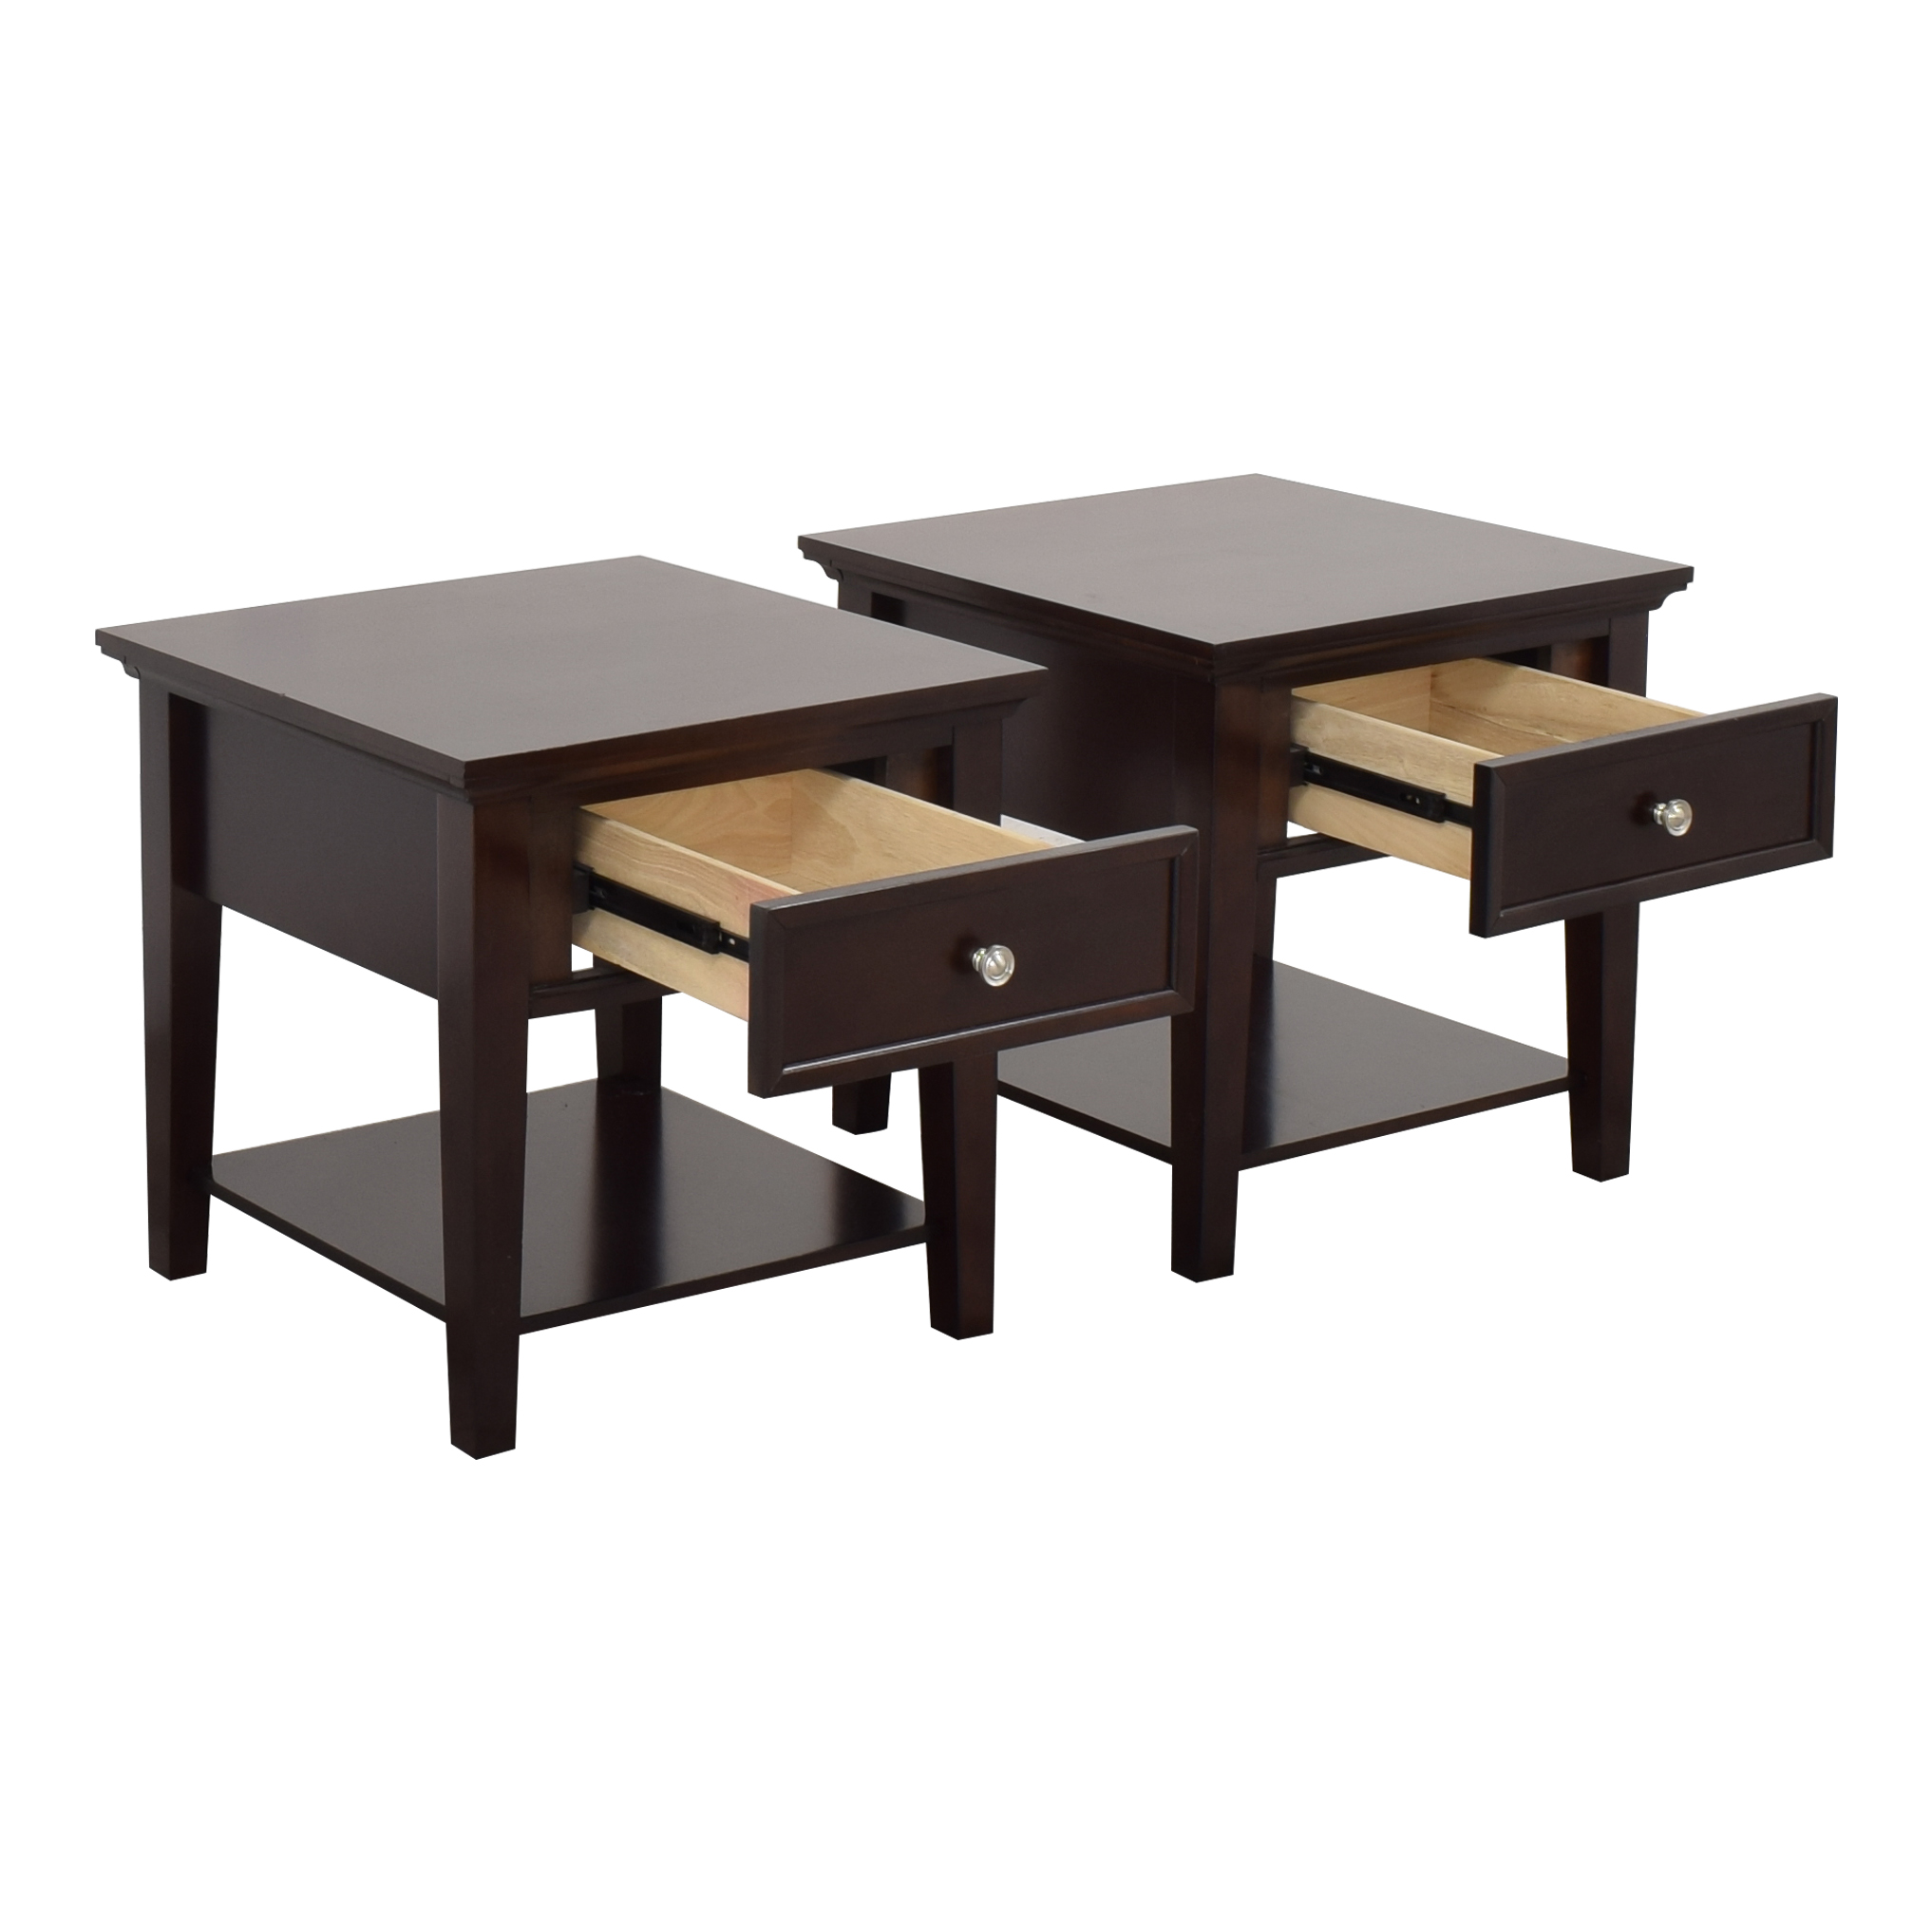 Coaster Single Drawer Cappuccino End Tables / Tables